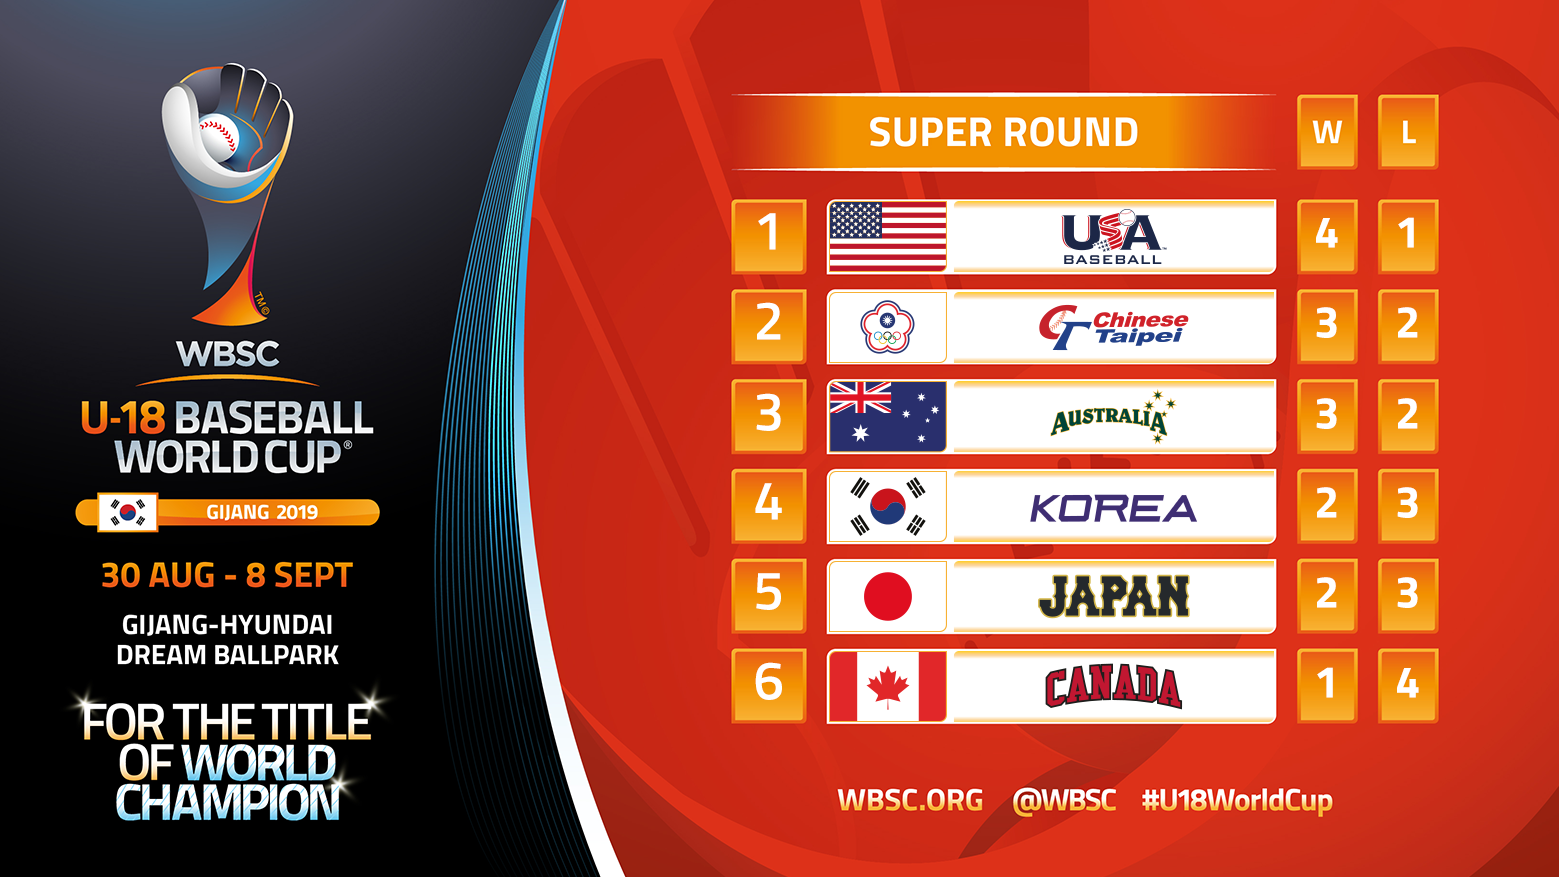 The standings after super round Day 3